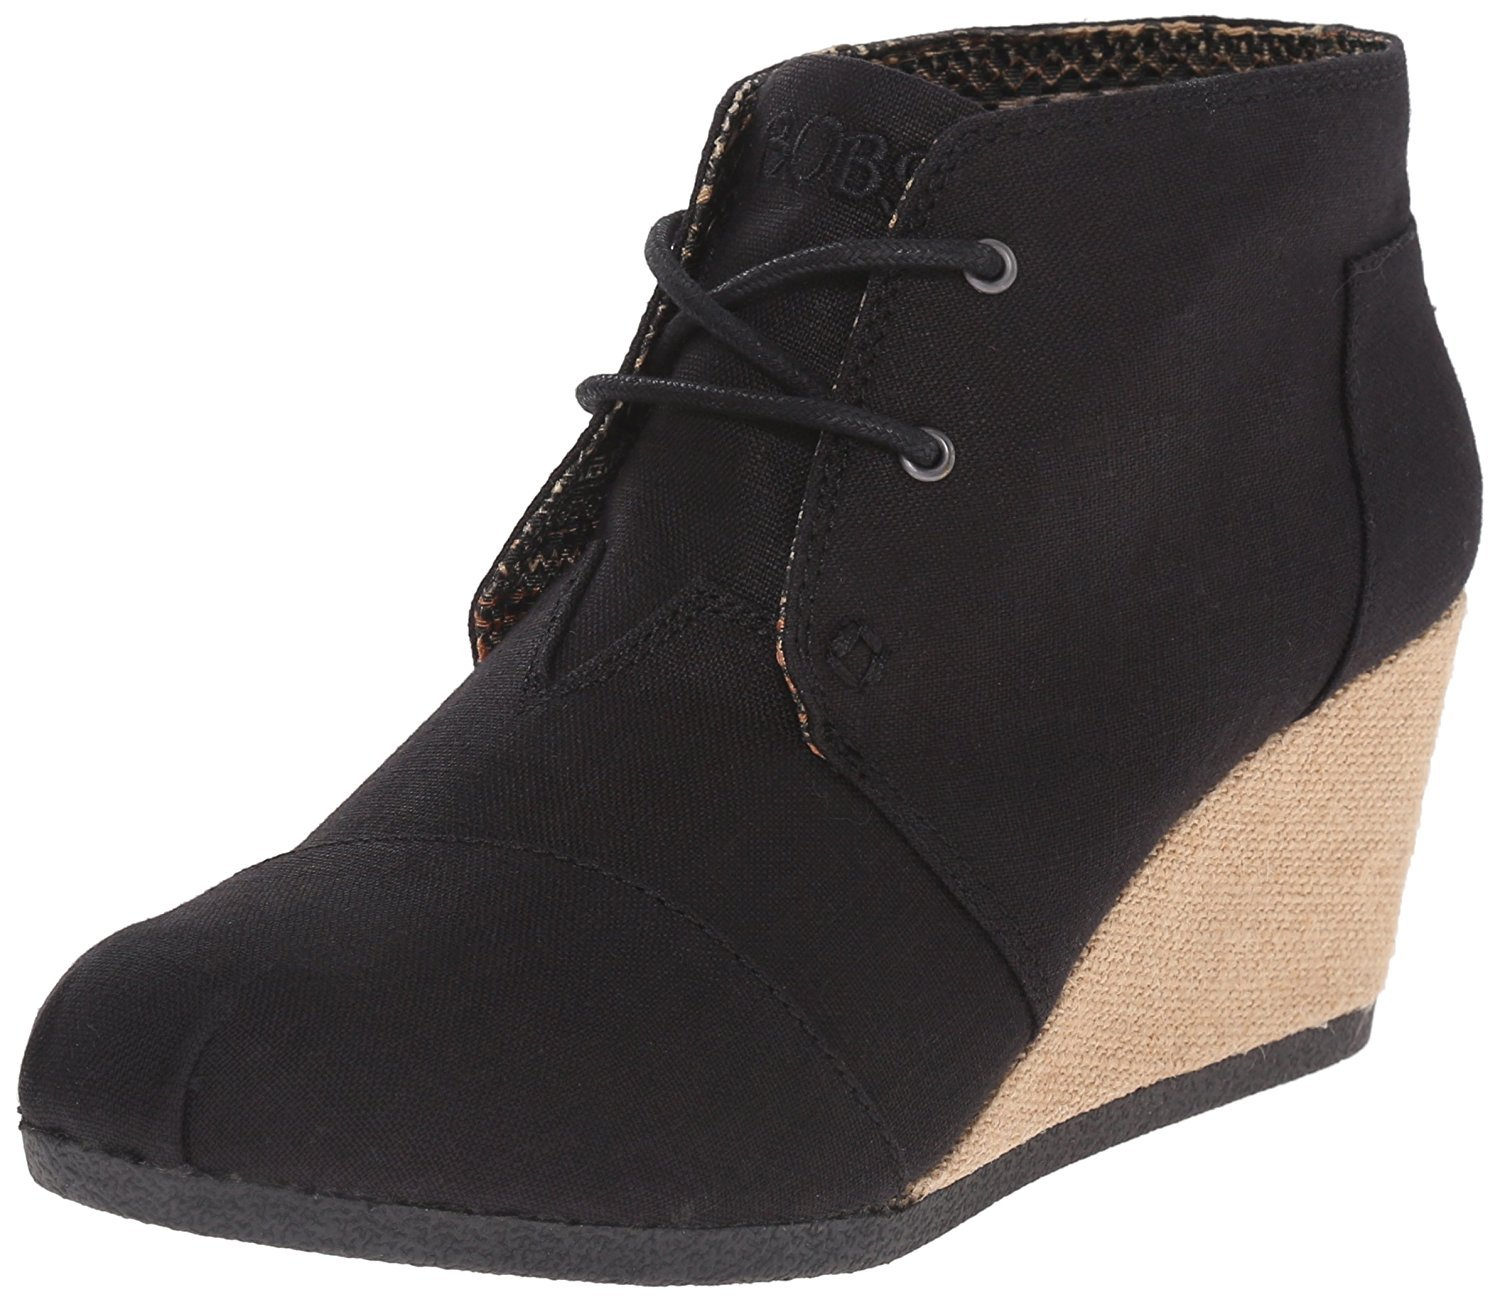 Skechers BOBS from Women's High-Notes - Melodies Boot, Black Linen, 9.5 M US